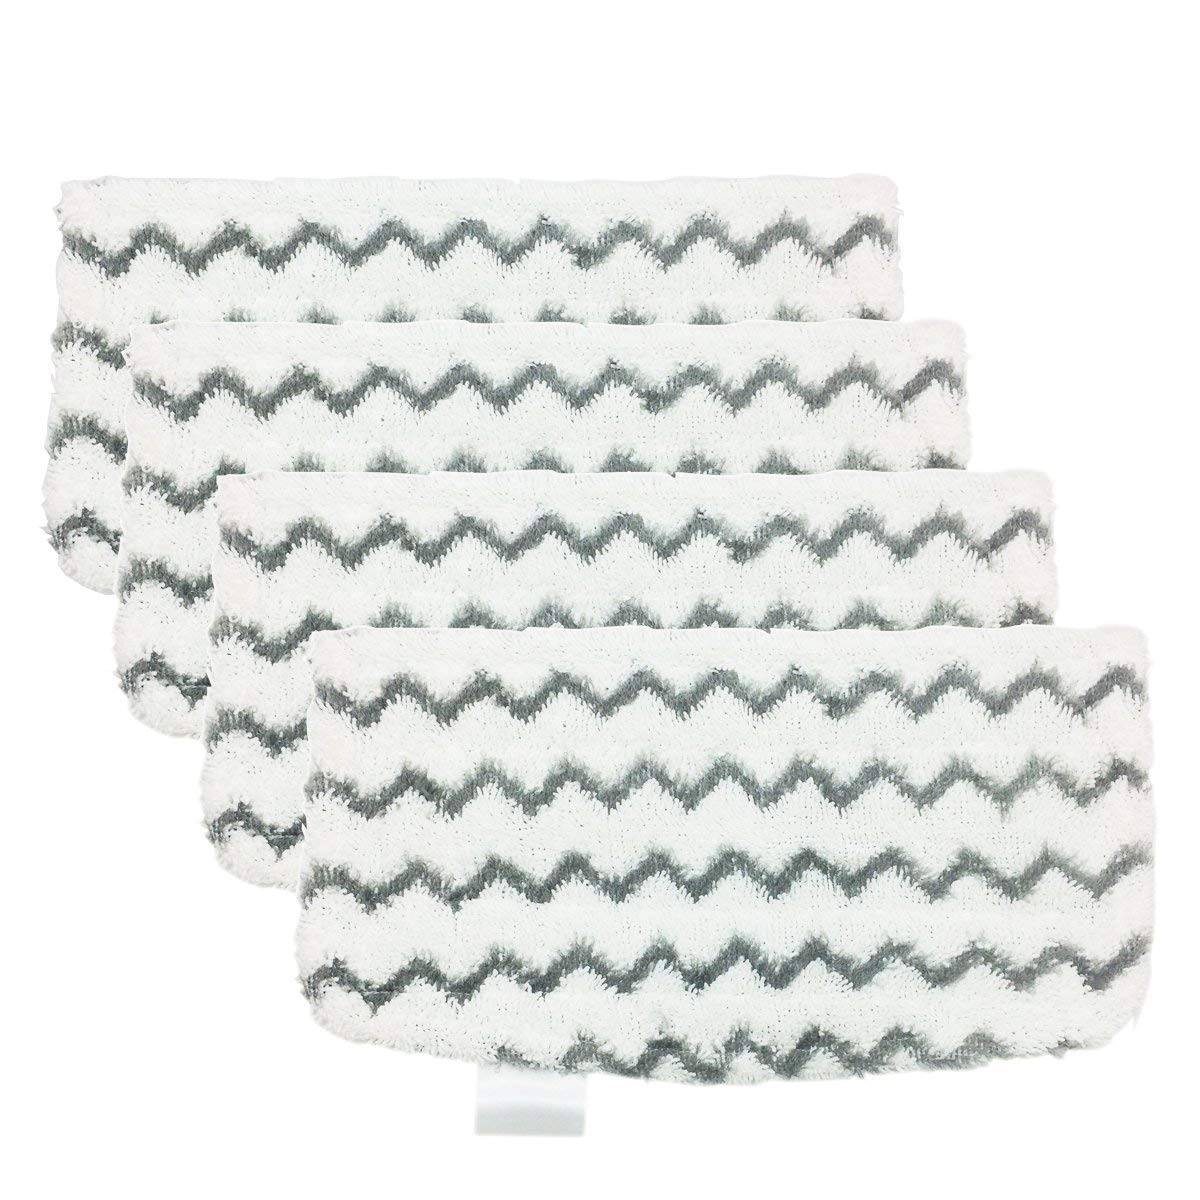 BBT Steam Mop Pads Fit for Light N Easy S3601 Steam Mops Replacement,Pack of 6 BAMBOOST